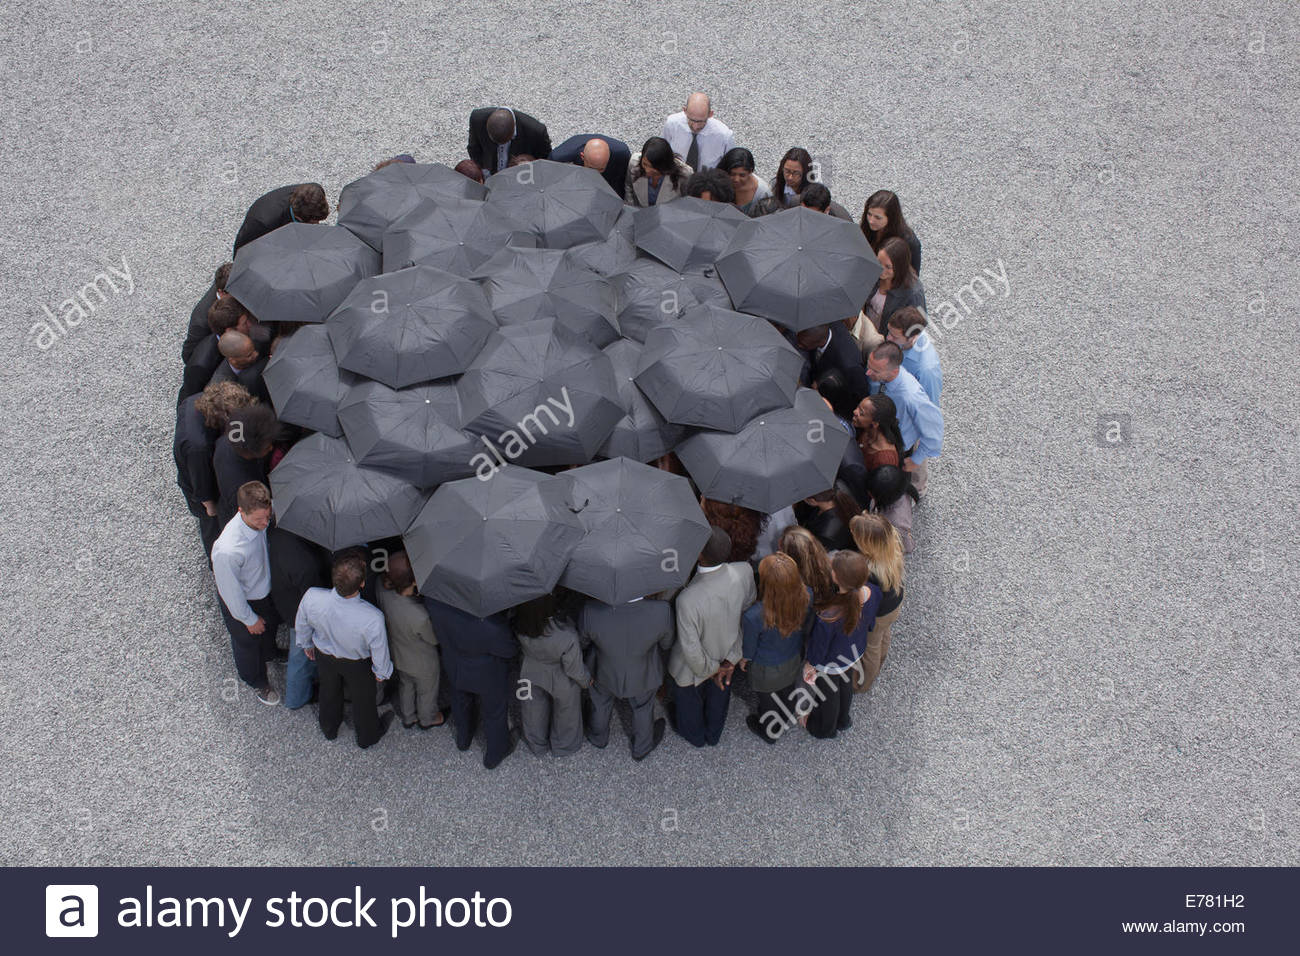 Circle formed by business people with umbrellas - Stock Image